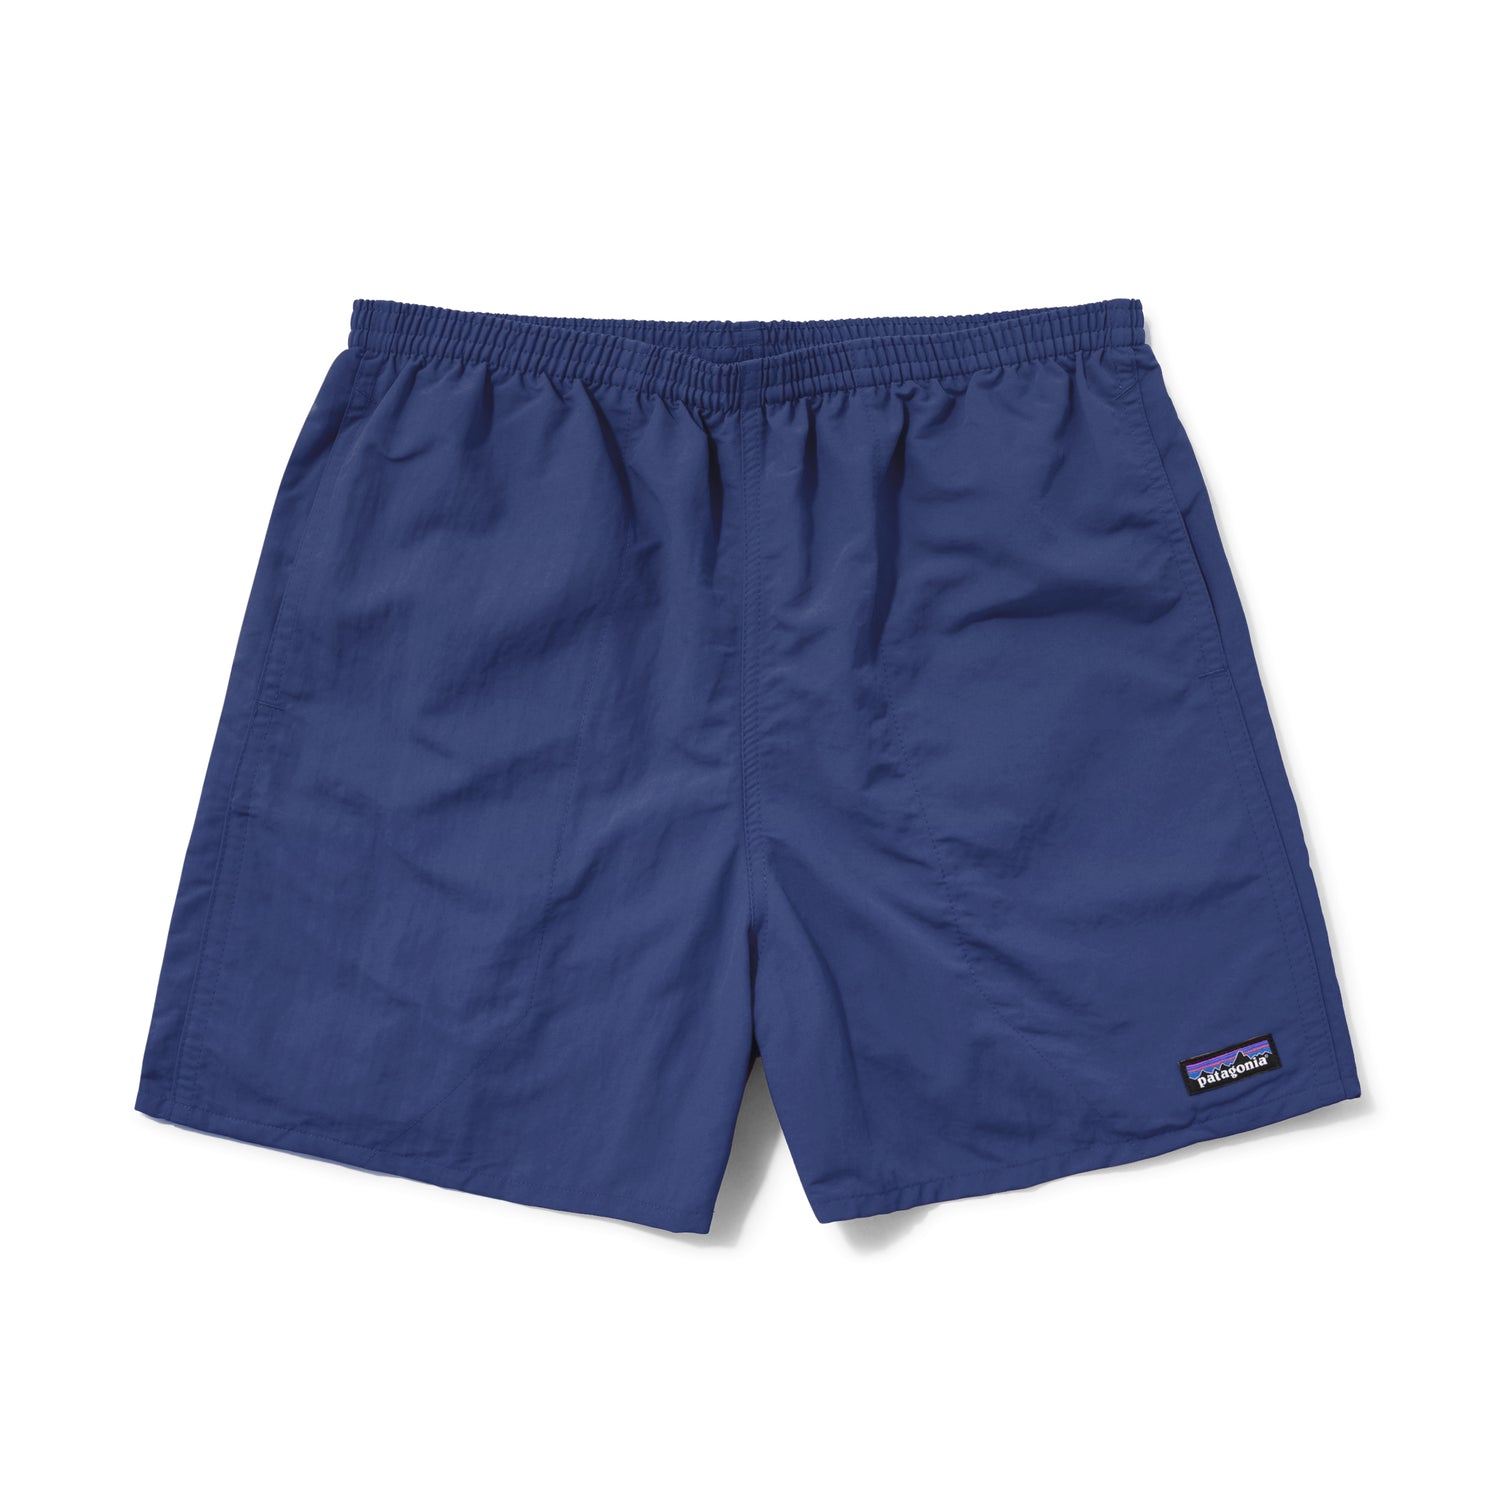 Baggies 5 In. Shorts, Stone Blue